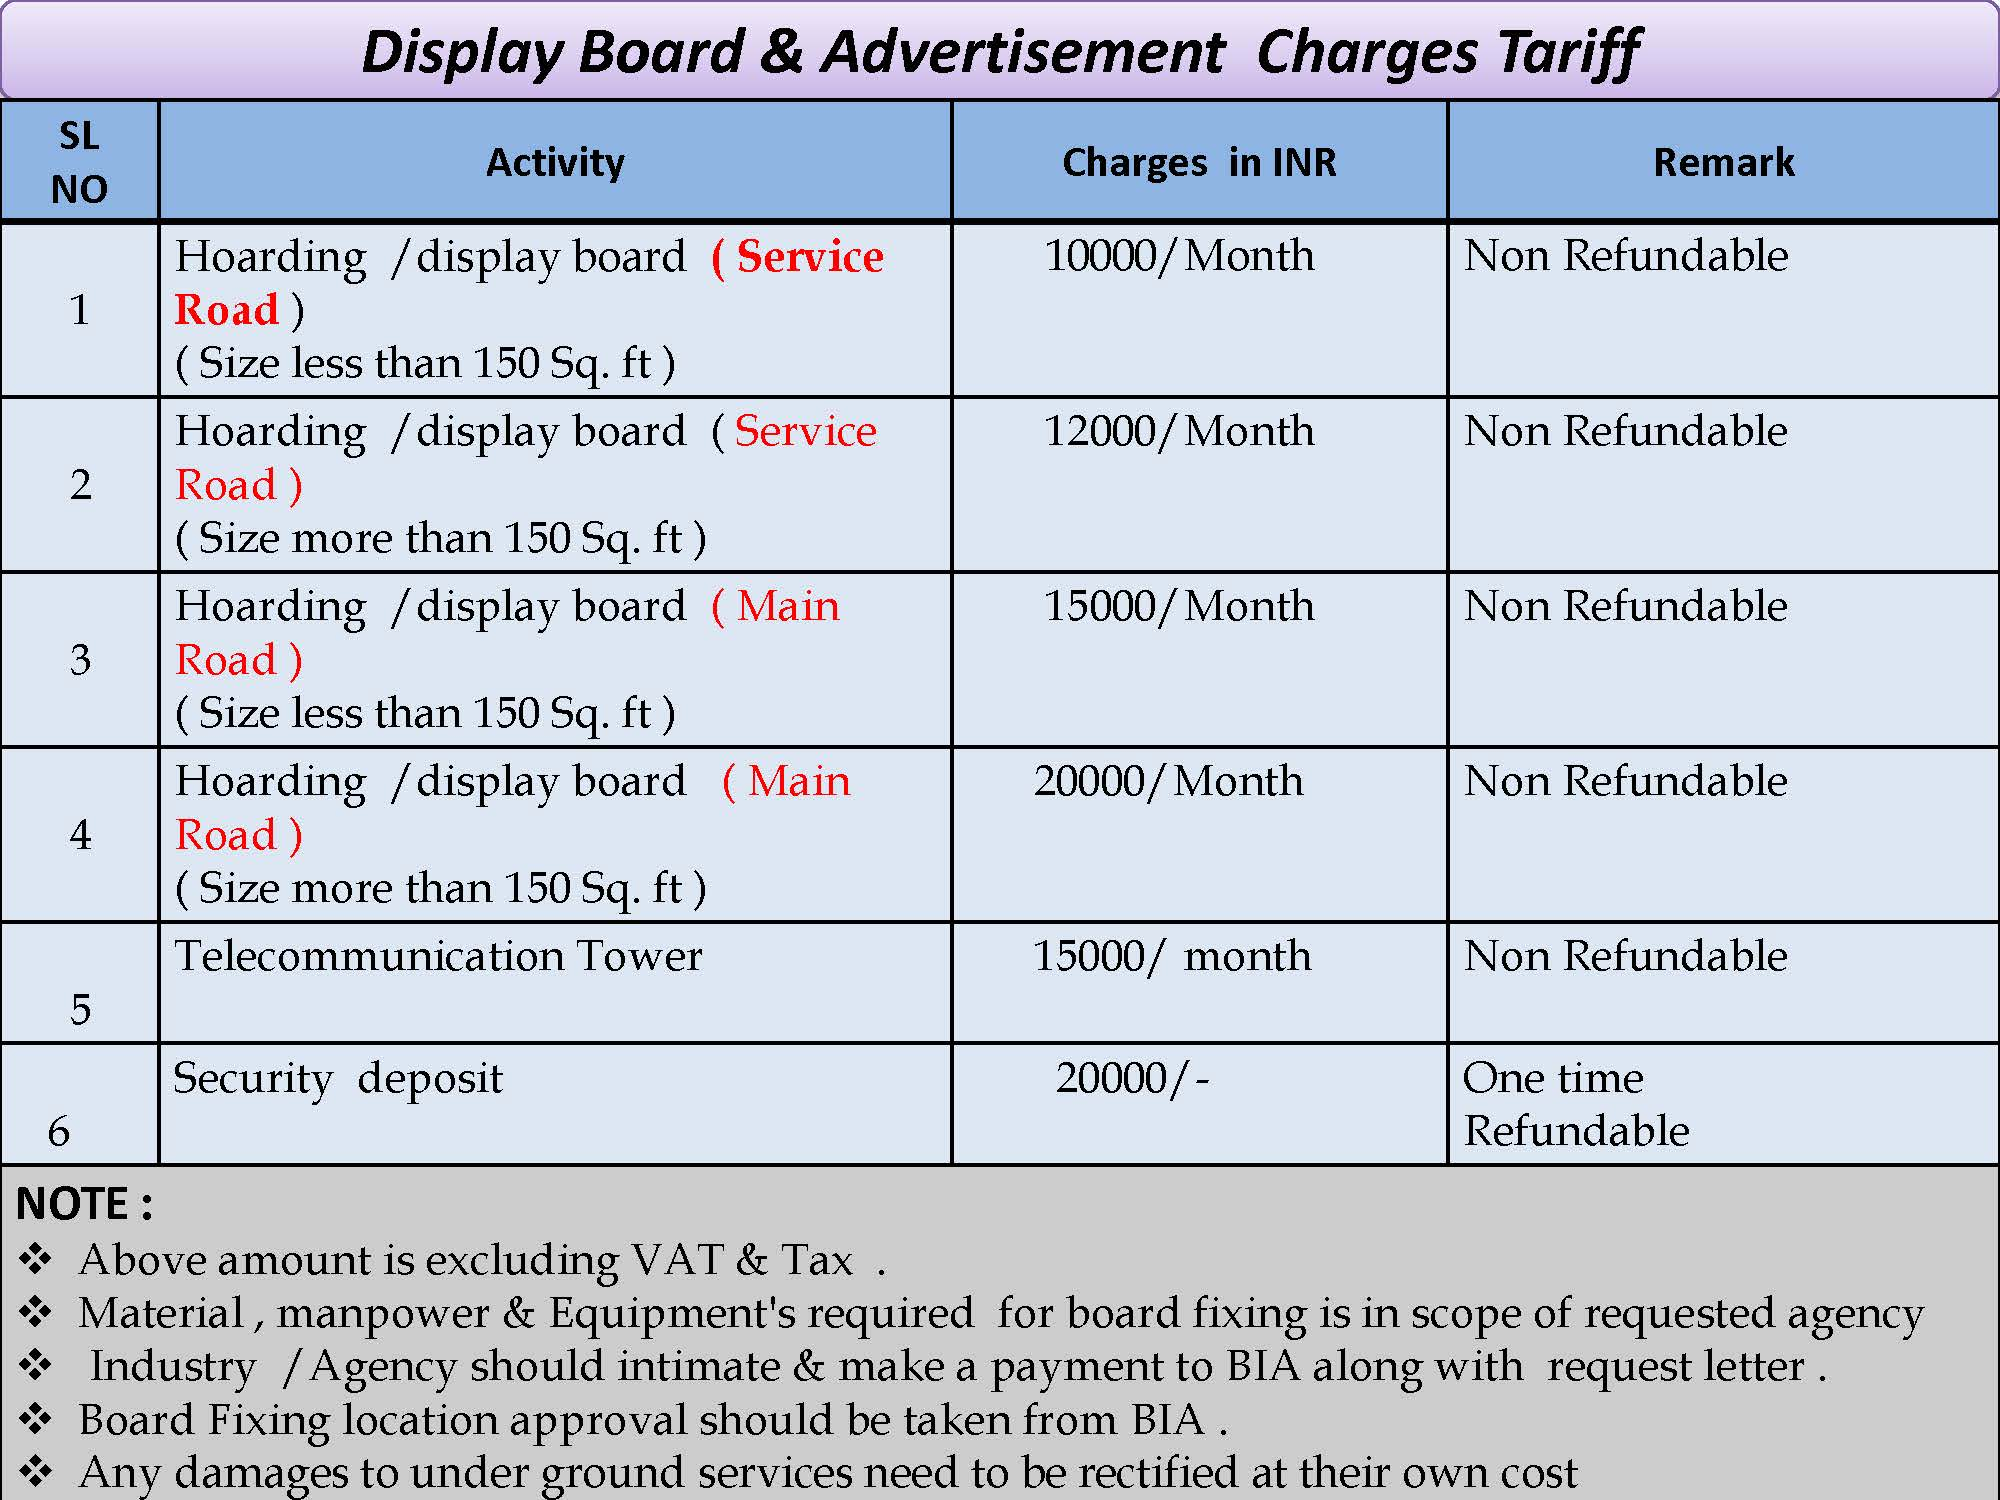 Display Board & Advertisement Charges Tariff